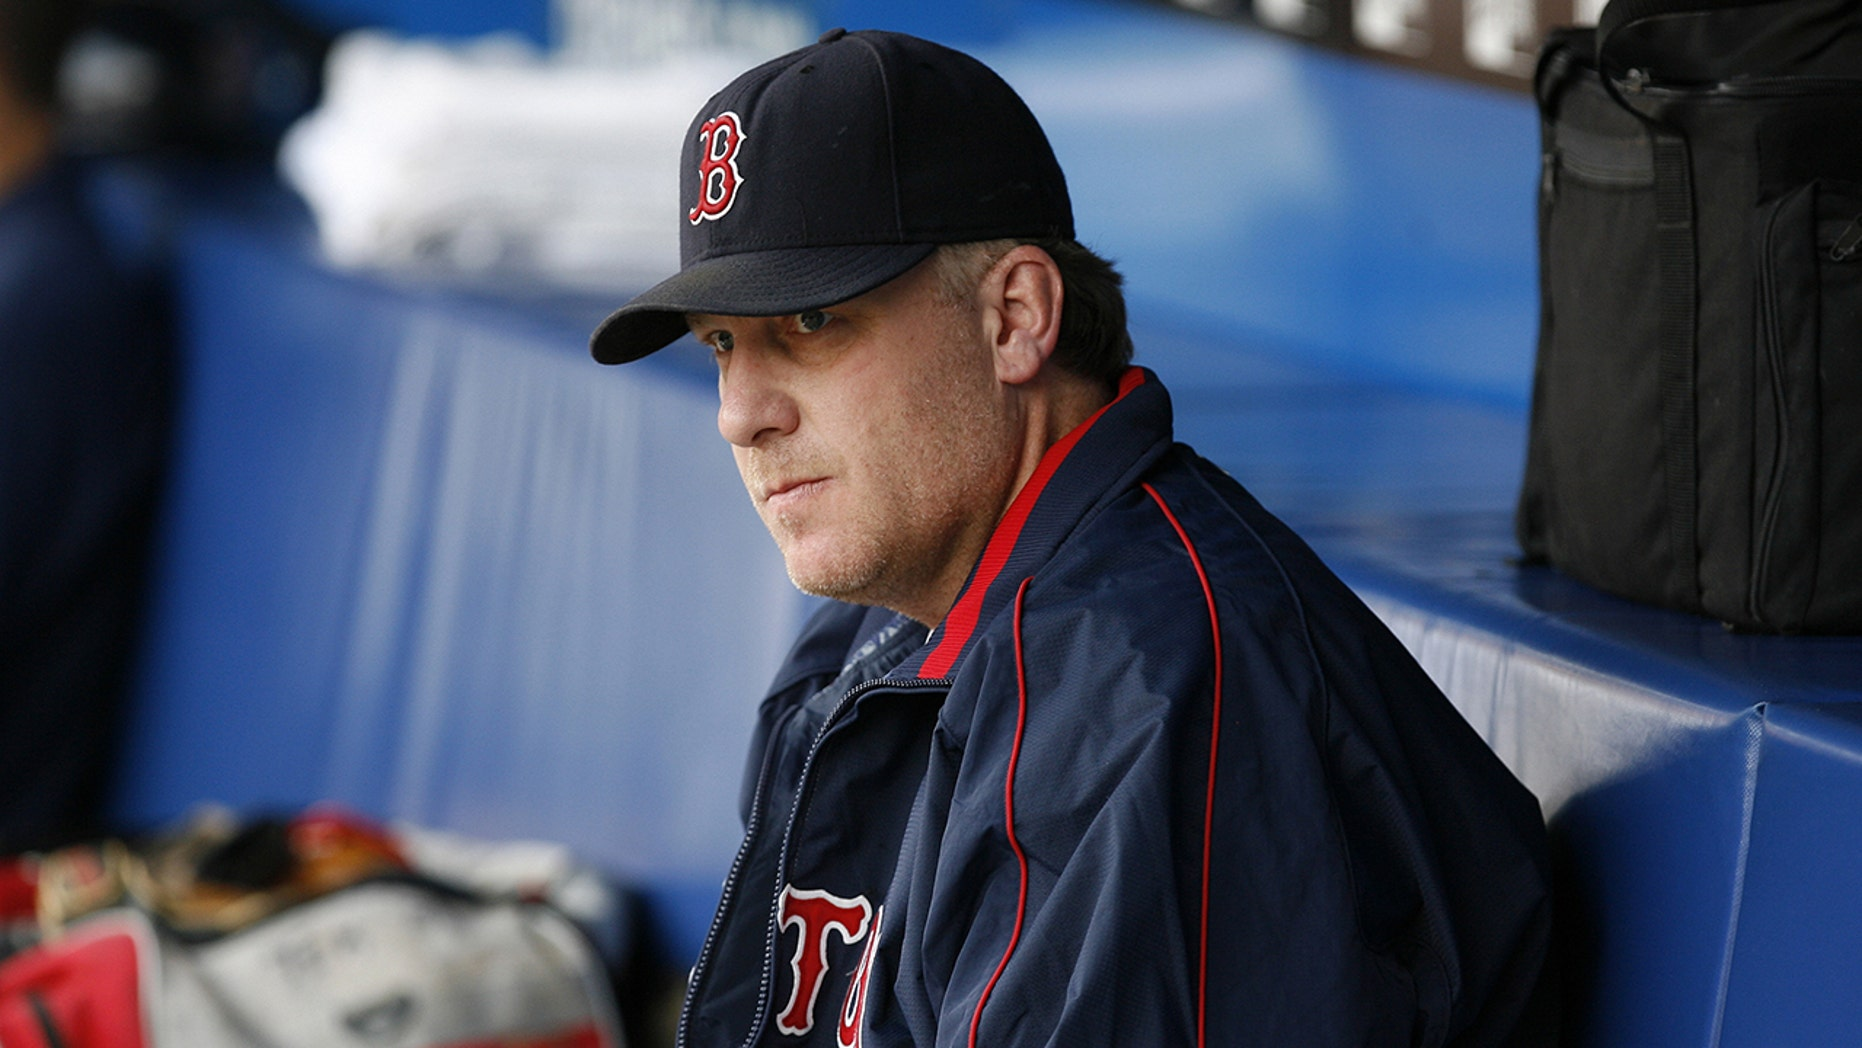 Curt Schilling absent from Red Sox first-pitch ceremony